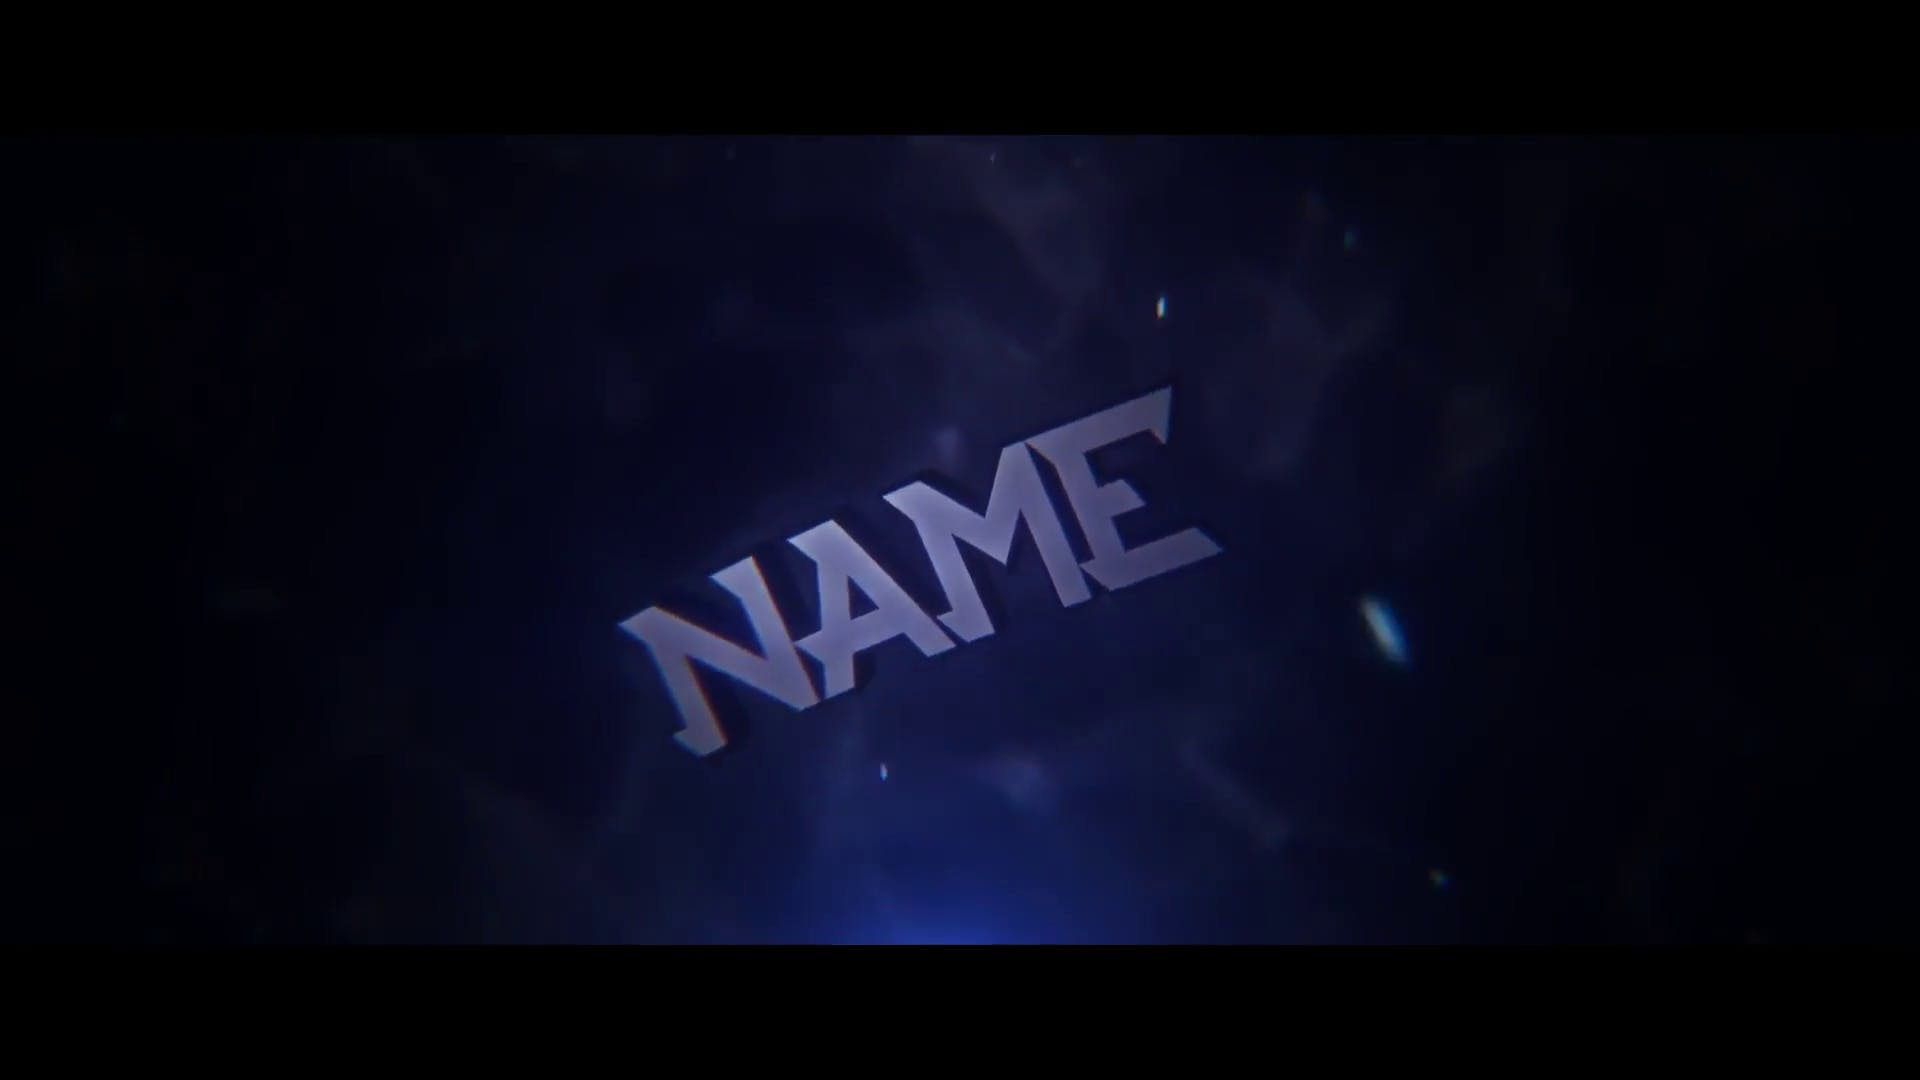 Wave Cinema 4D After Effects Intro Template FREE DOWNLOAD